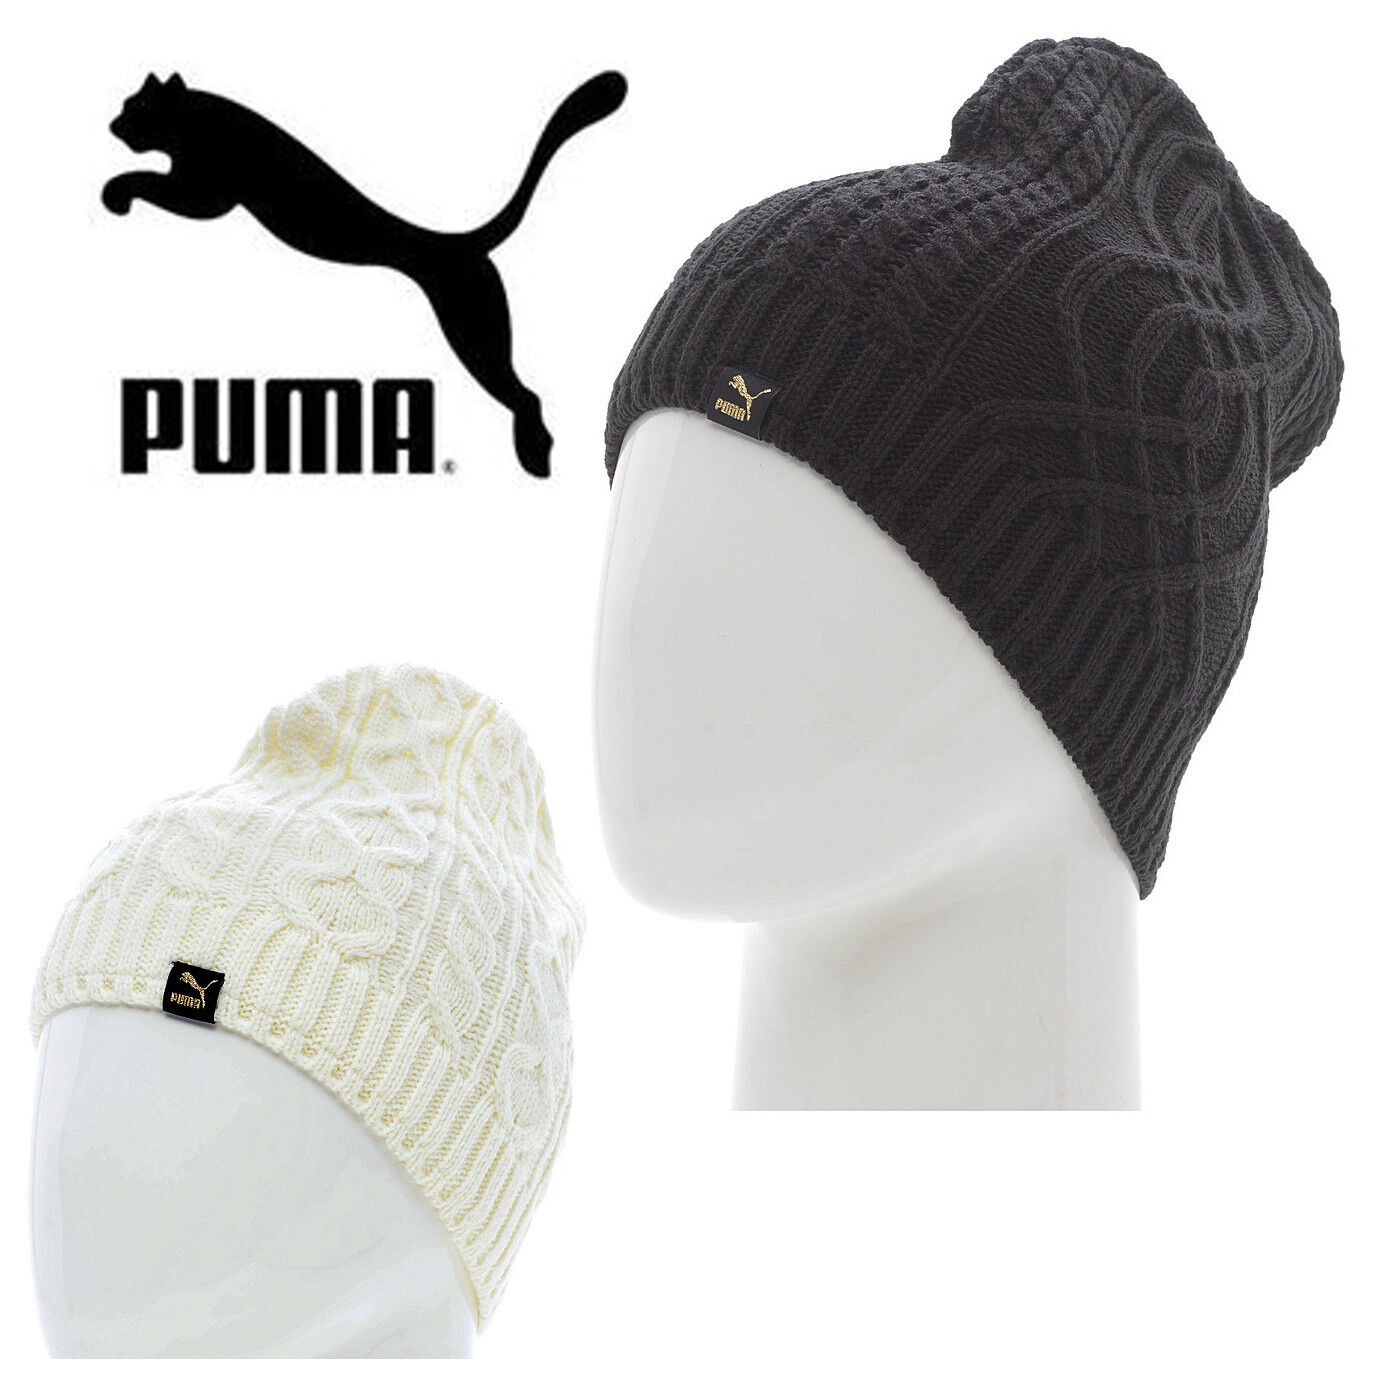 7c476a49f Details about PUMA Mens Mele Cable Knit Beanie Hat Fleece Lined Winter Hats  CLEARANCE SALE